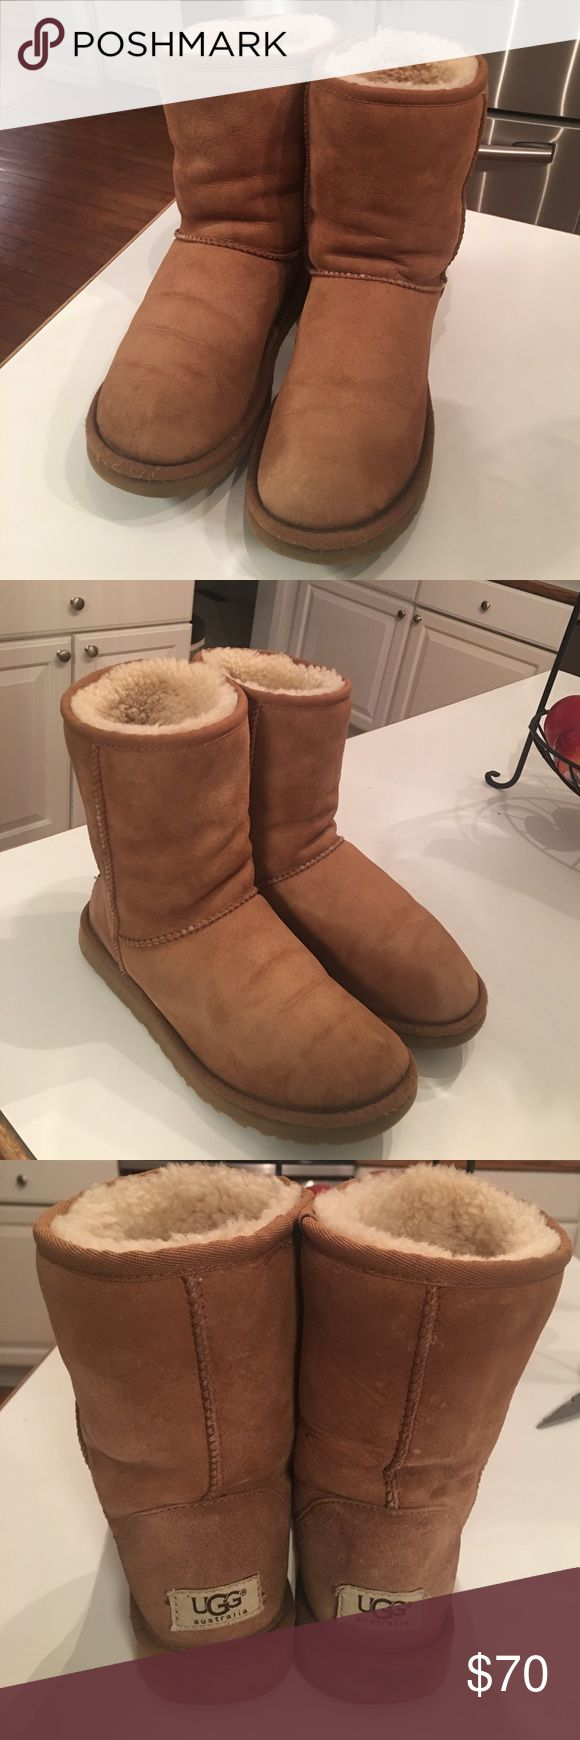 Ugg Chestnut Size 7 Uggs Chestnut Sz 7 in good used condition. No box included. UGG Shoes Winter & Rain Boots